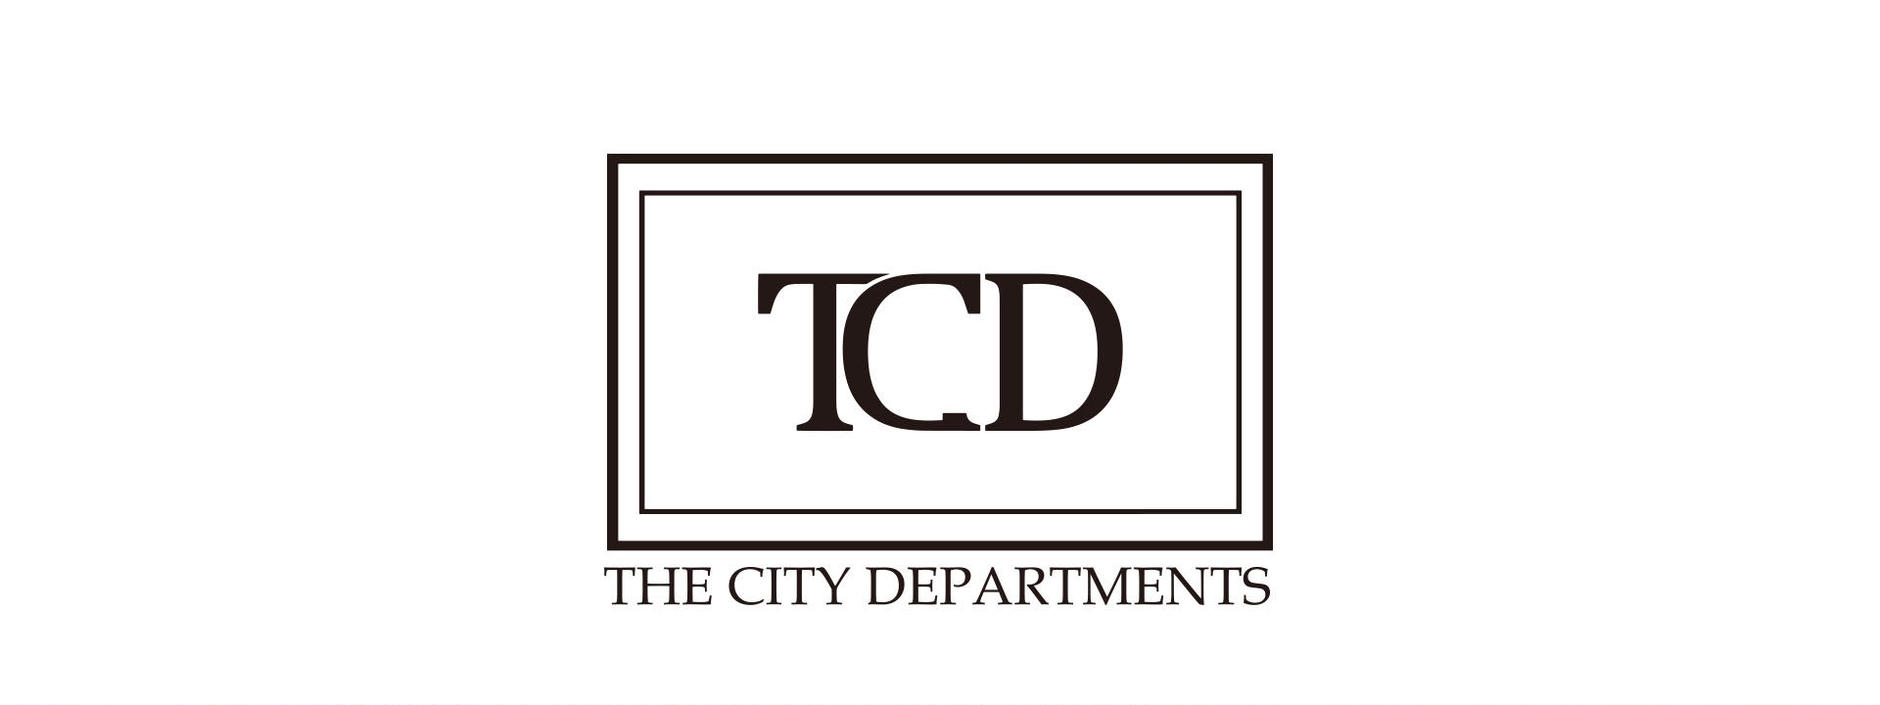 THE CITY DEPARTMENTS